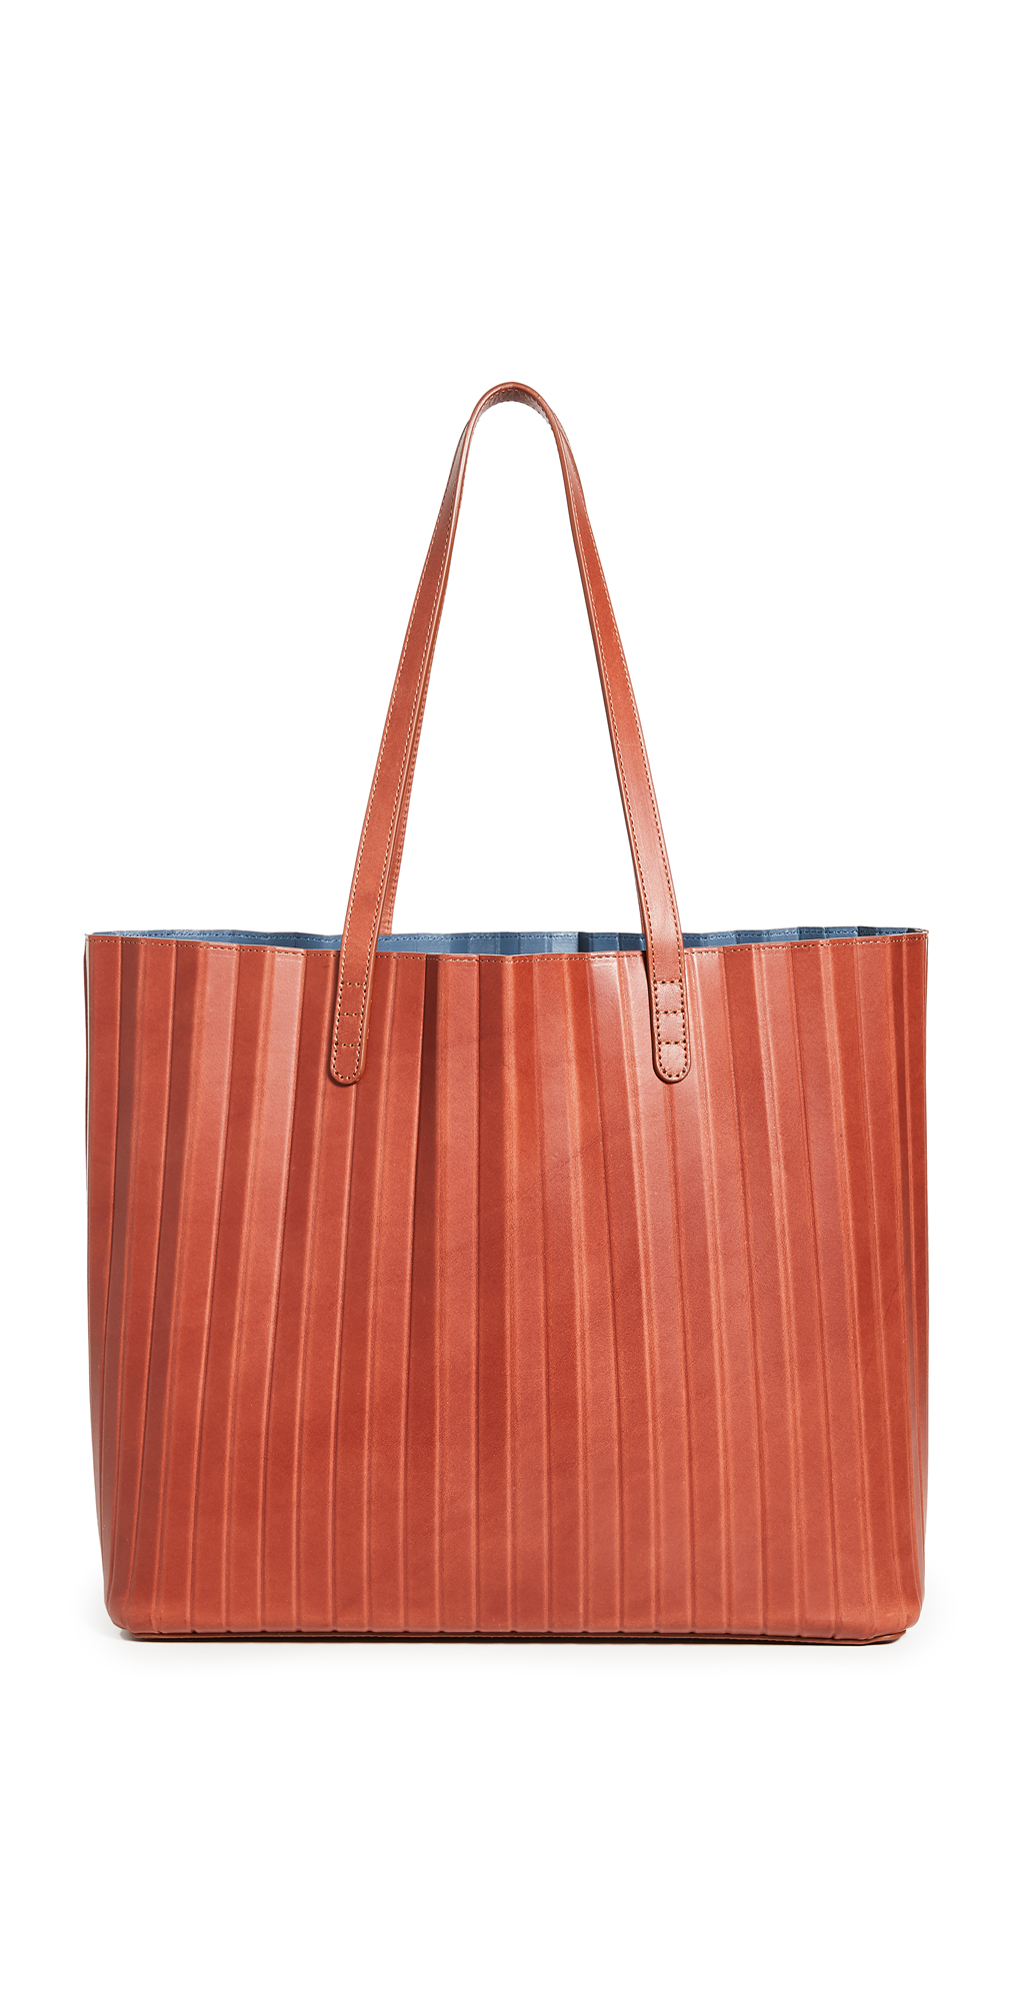 Mansur Gavriel Pleated Tote Bag